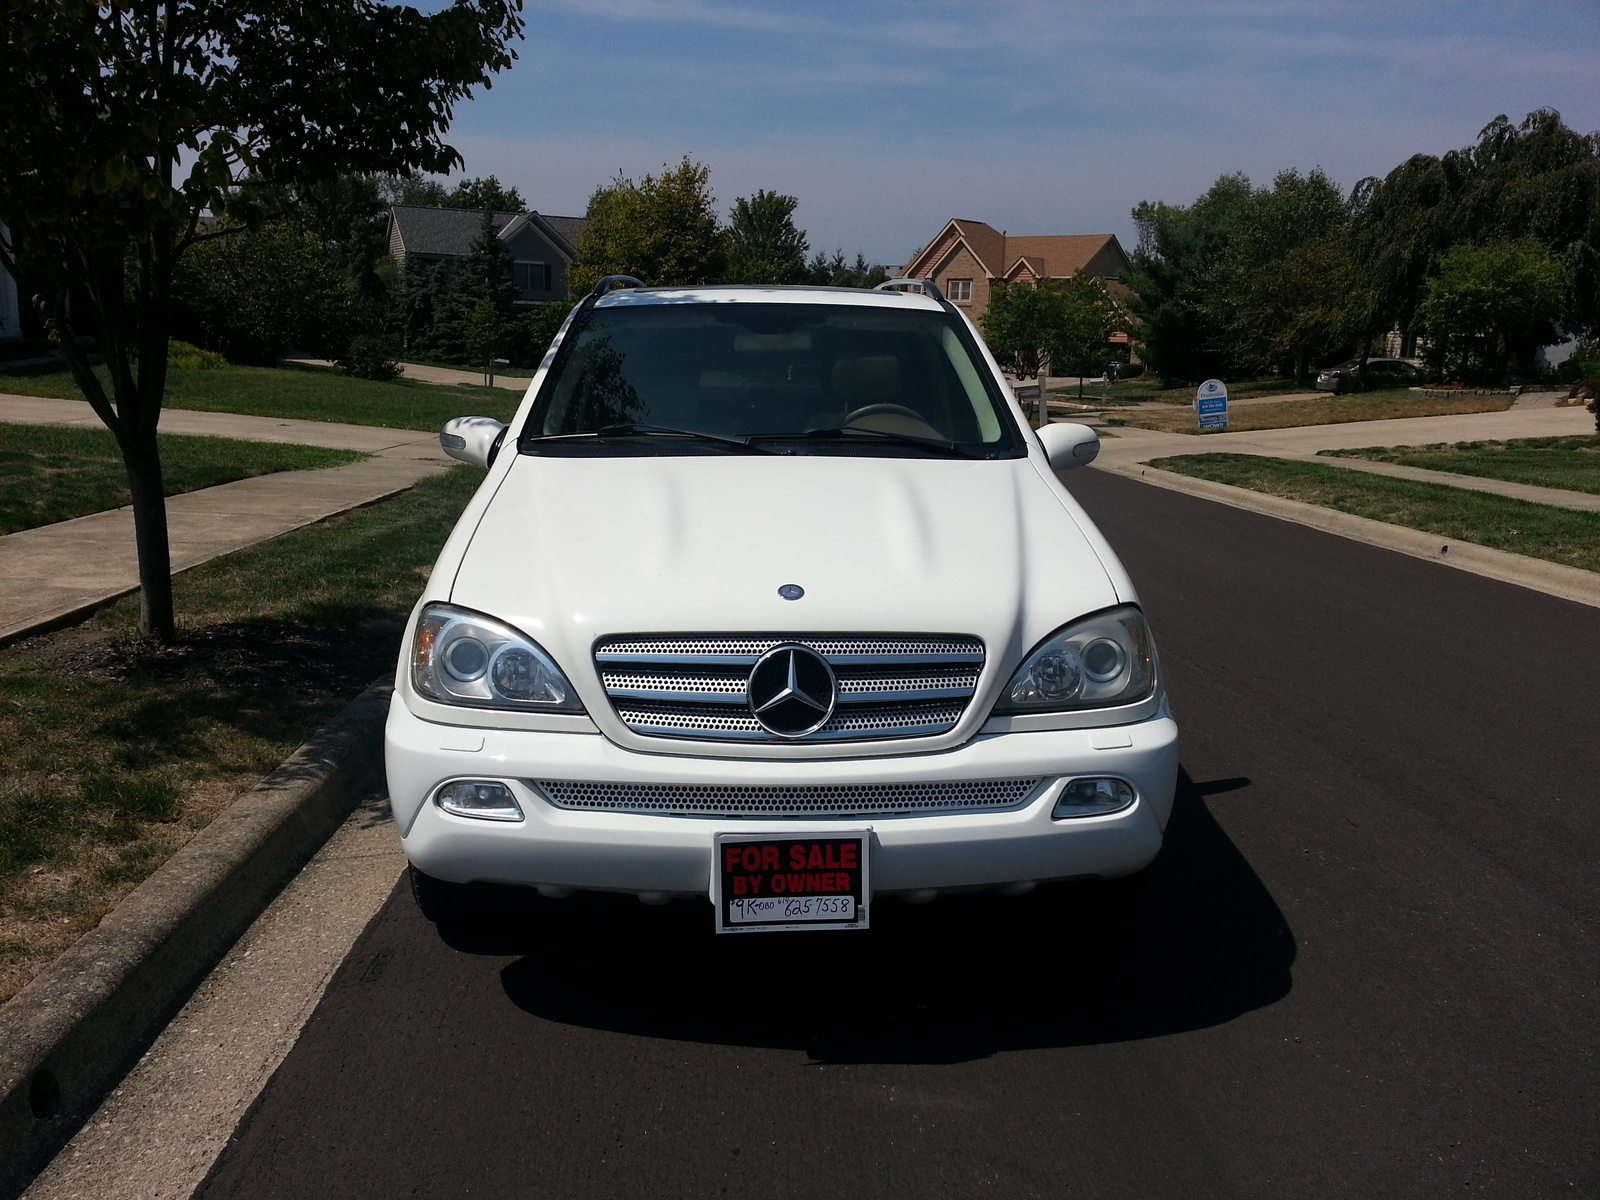 2005 mercedes benz m class pictures cargurus for Mercedes benz suv 2005